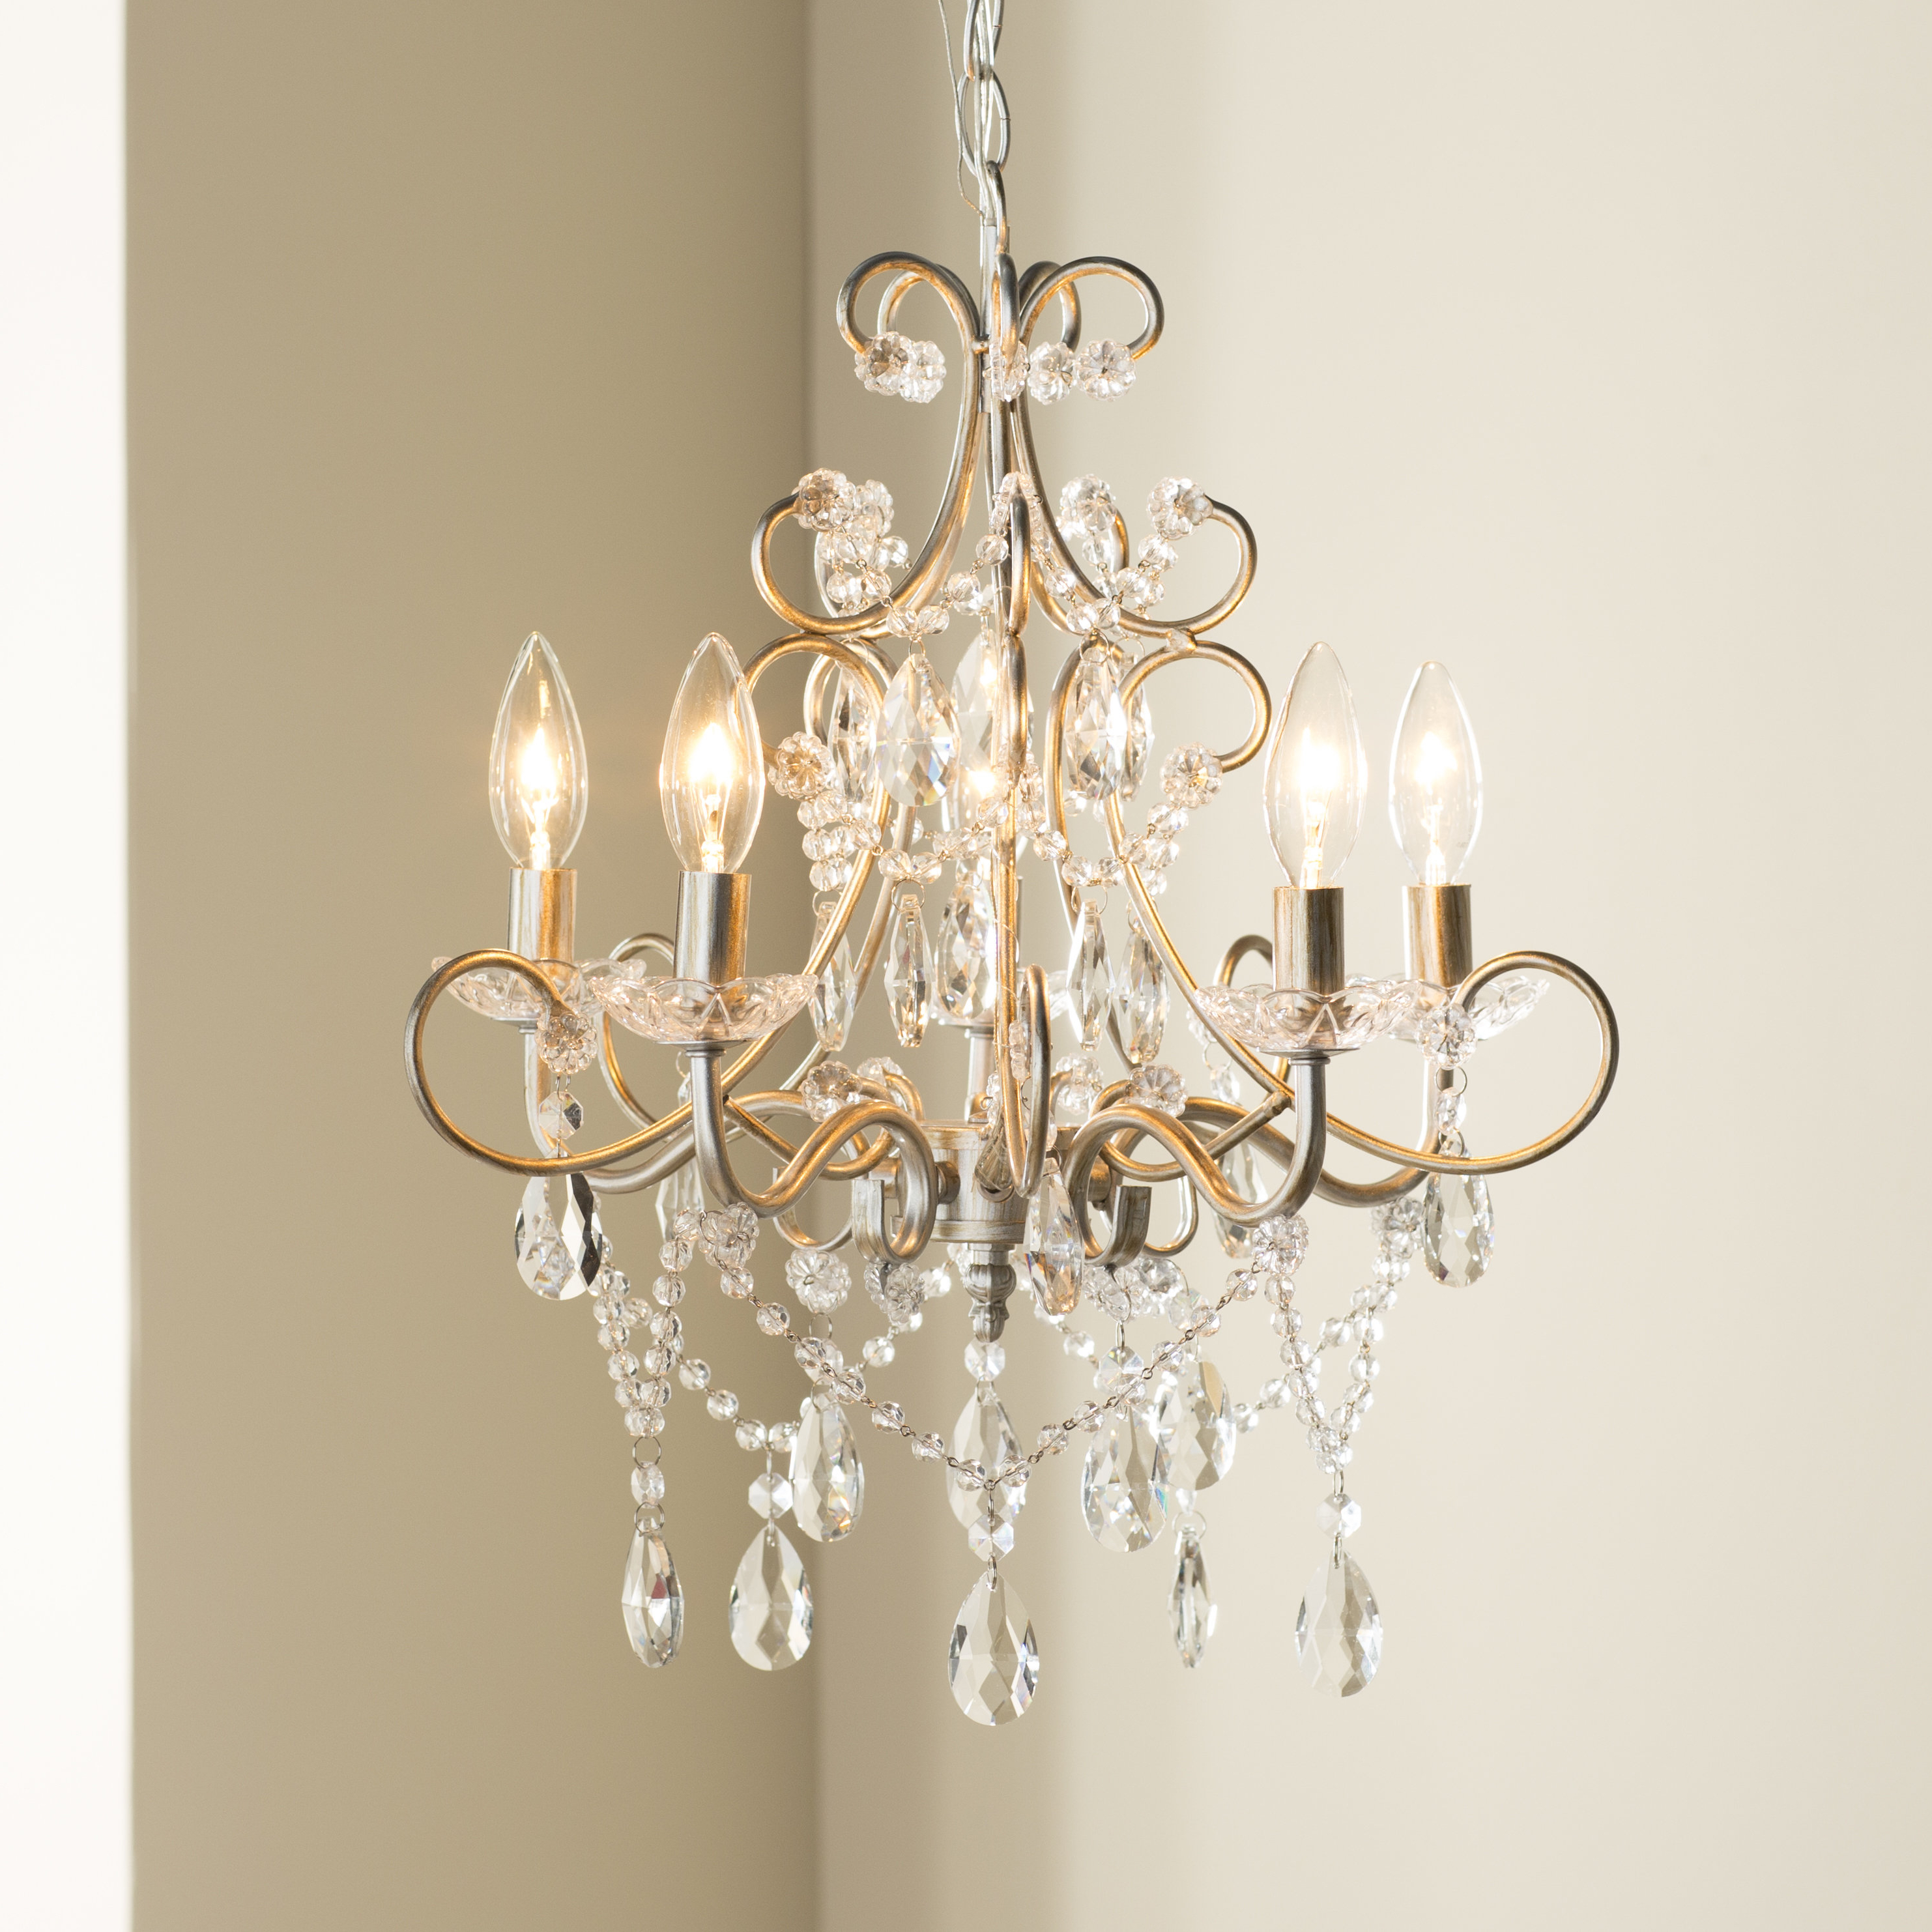 Astoria Grand Blanchette 5 Light Candle Style Chandelier For Famous Hesse 5 Light Candle Style Chandeliers (View 5 of 25)